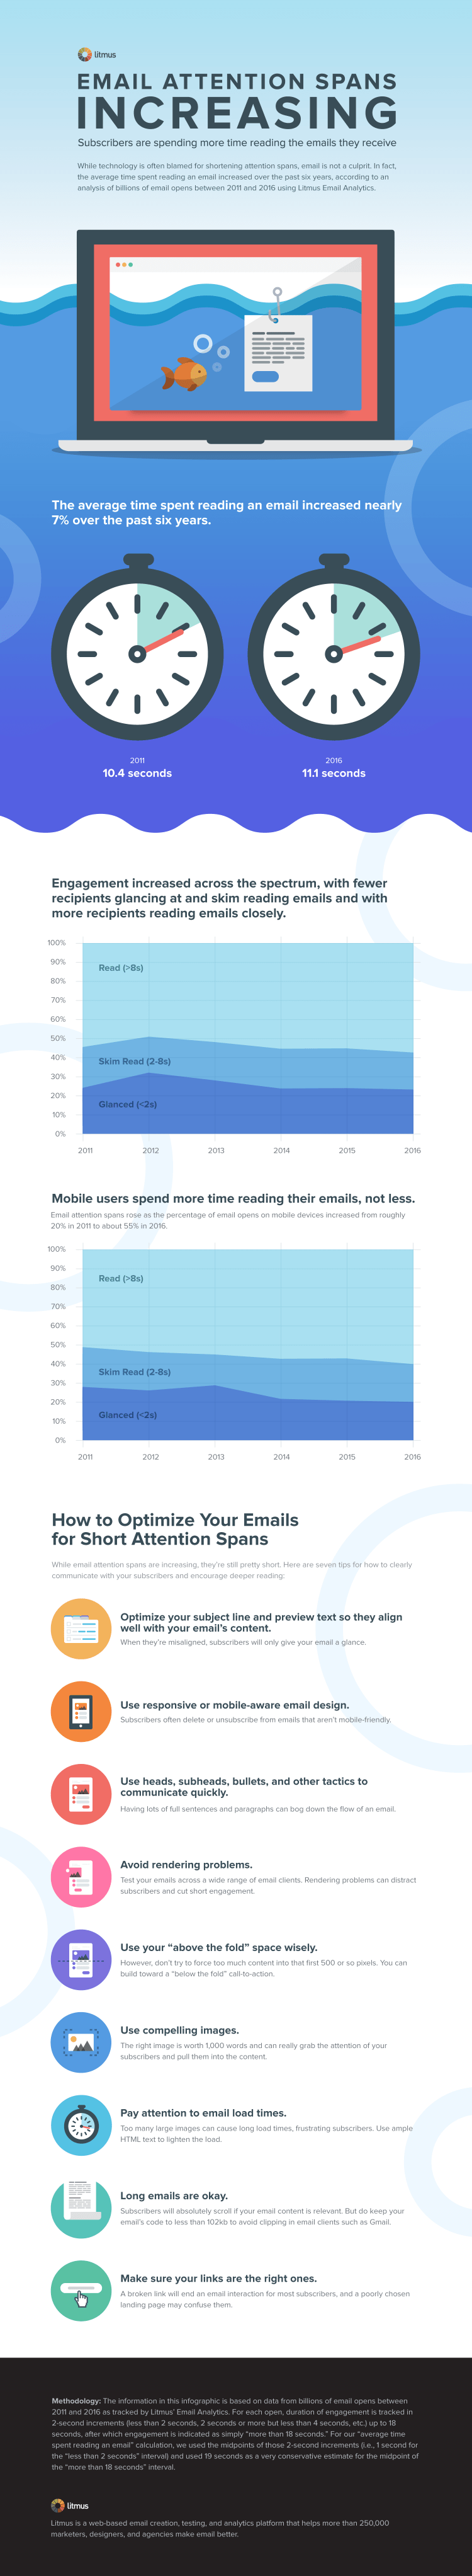 Infographic: Email Design & Attention Spans